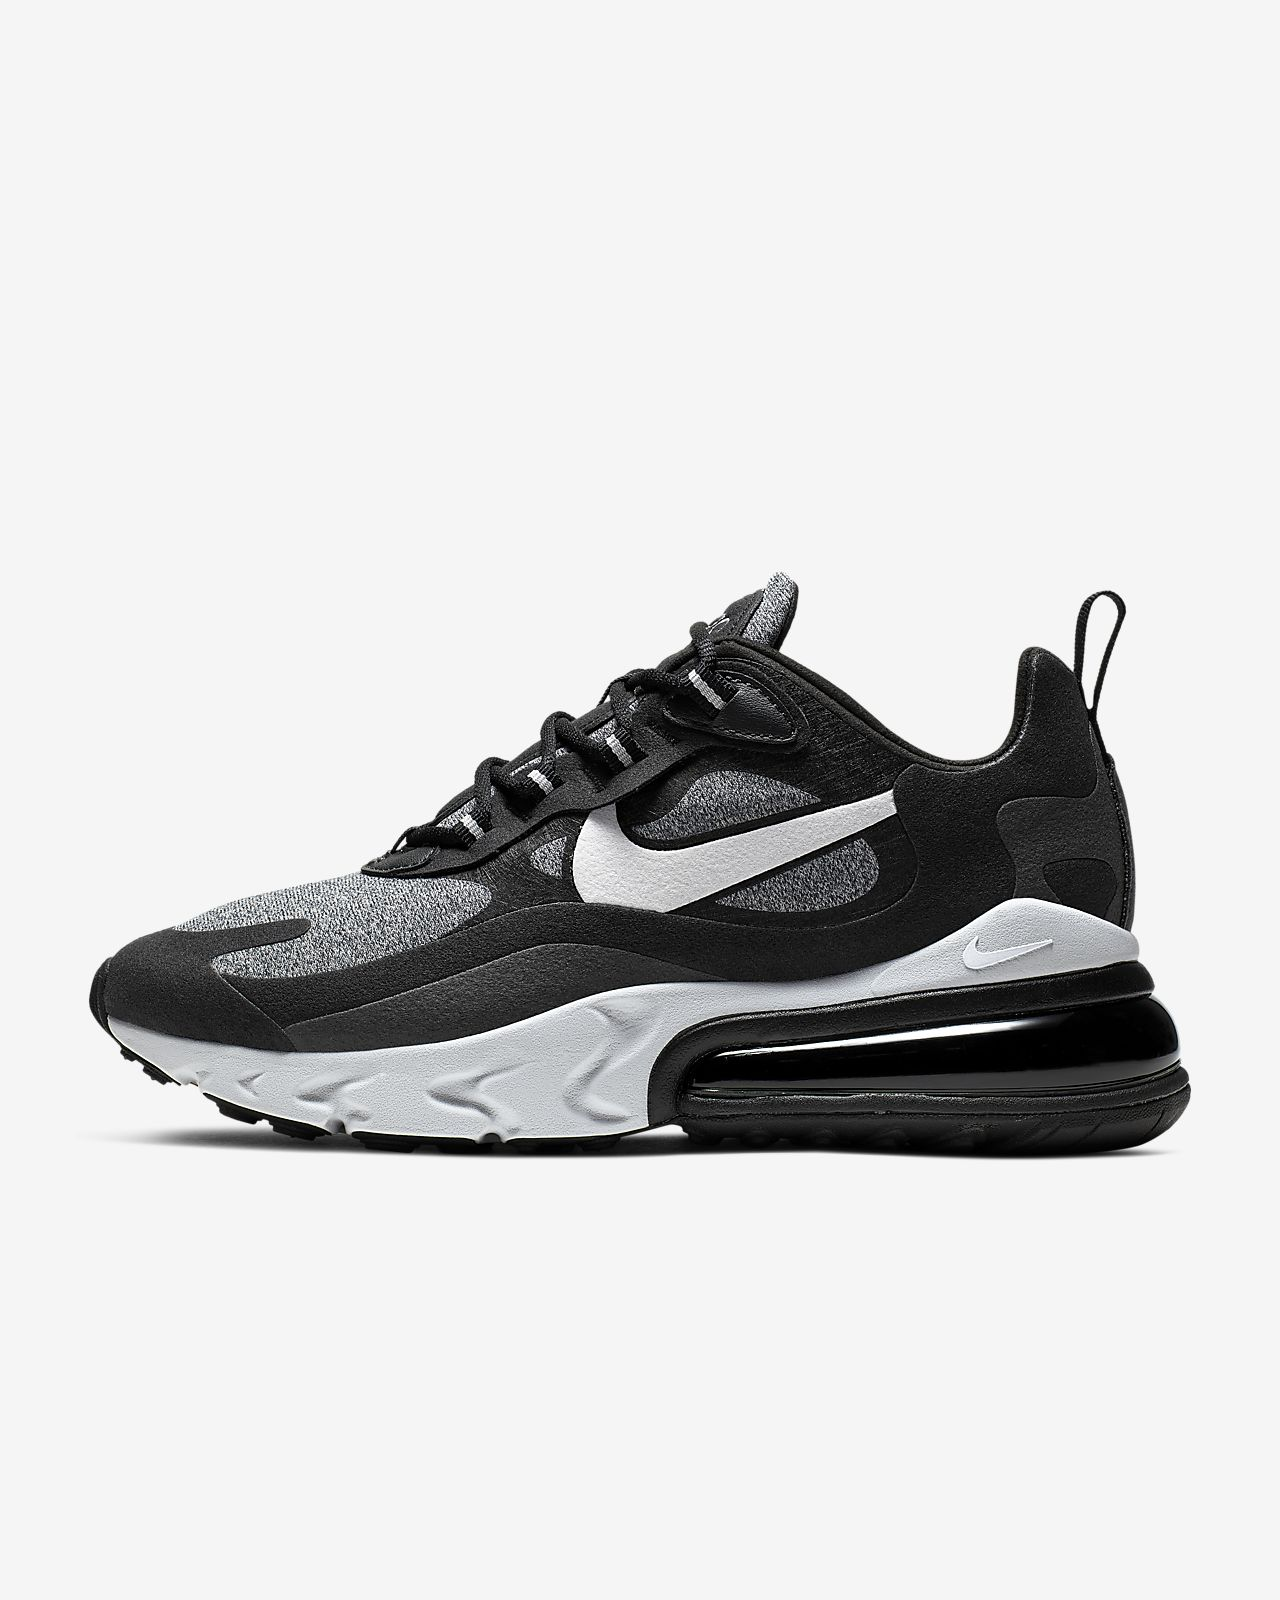 nike 270 femme chaussures